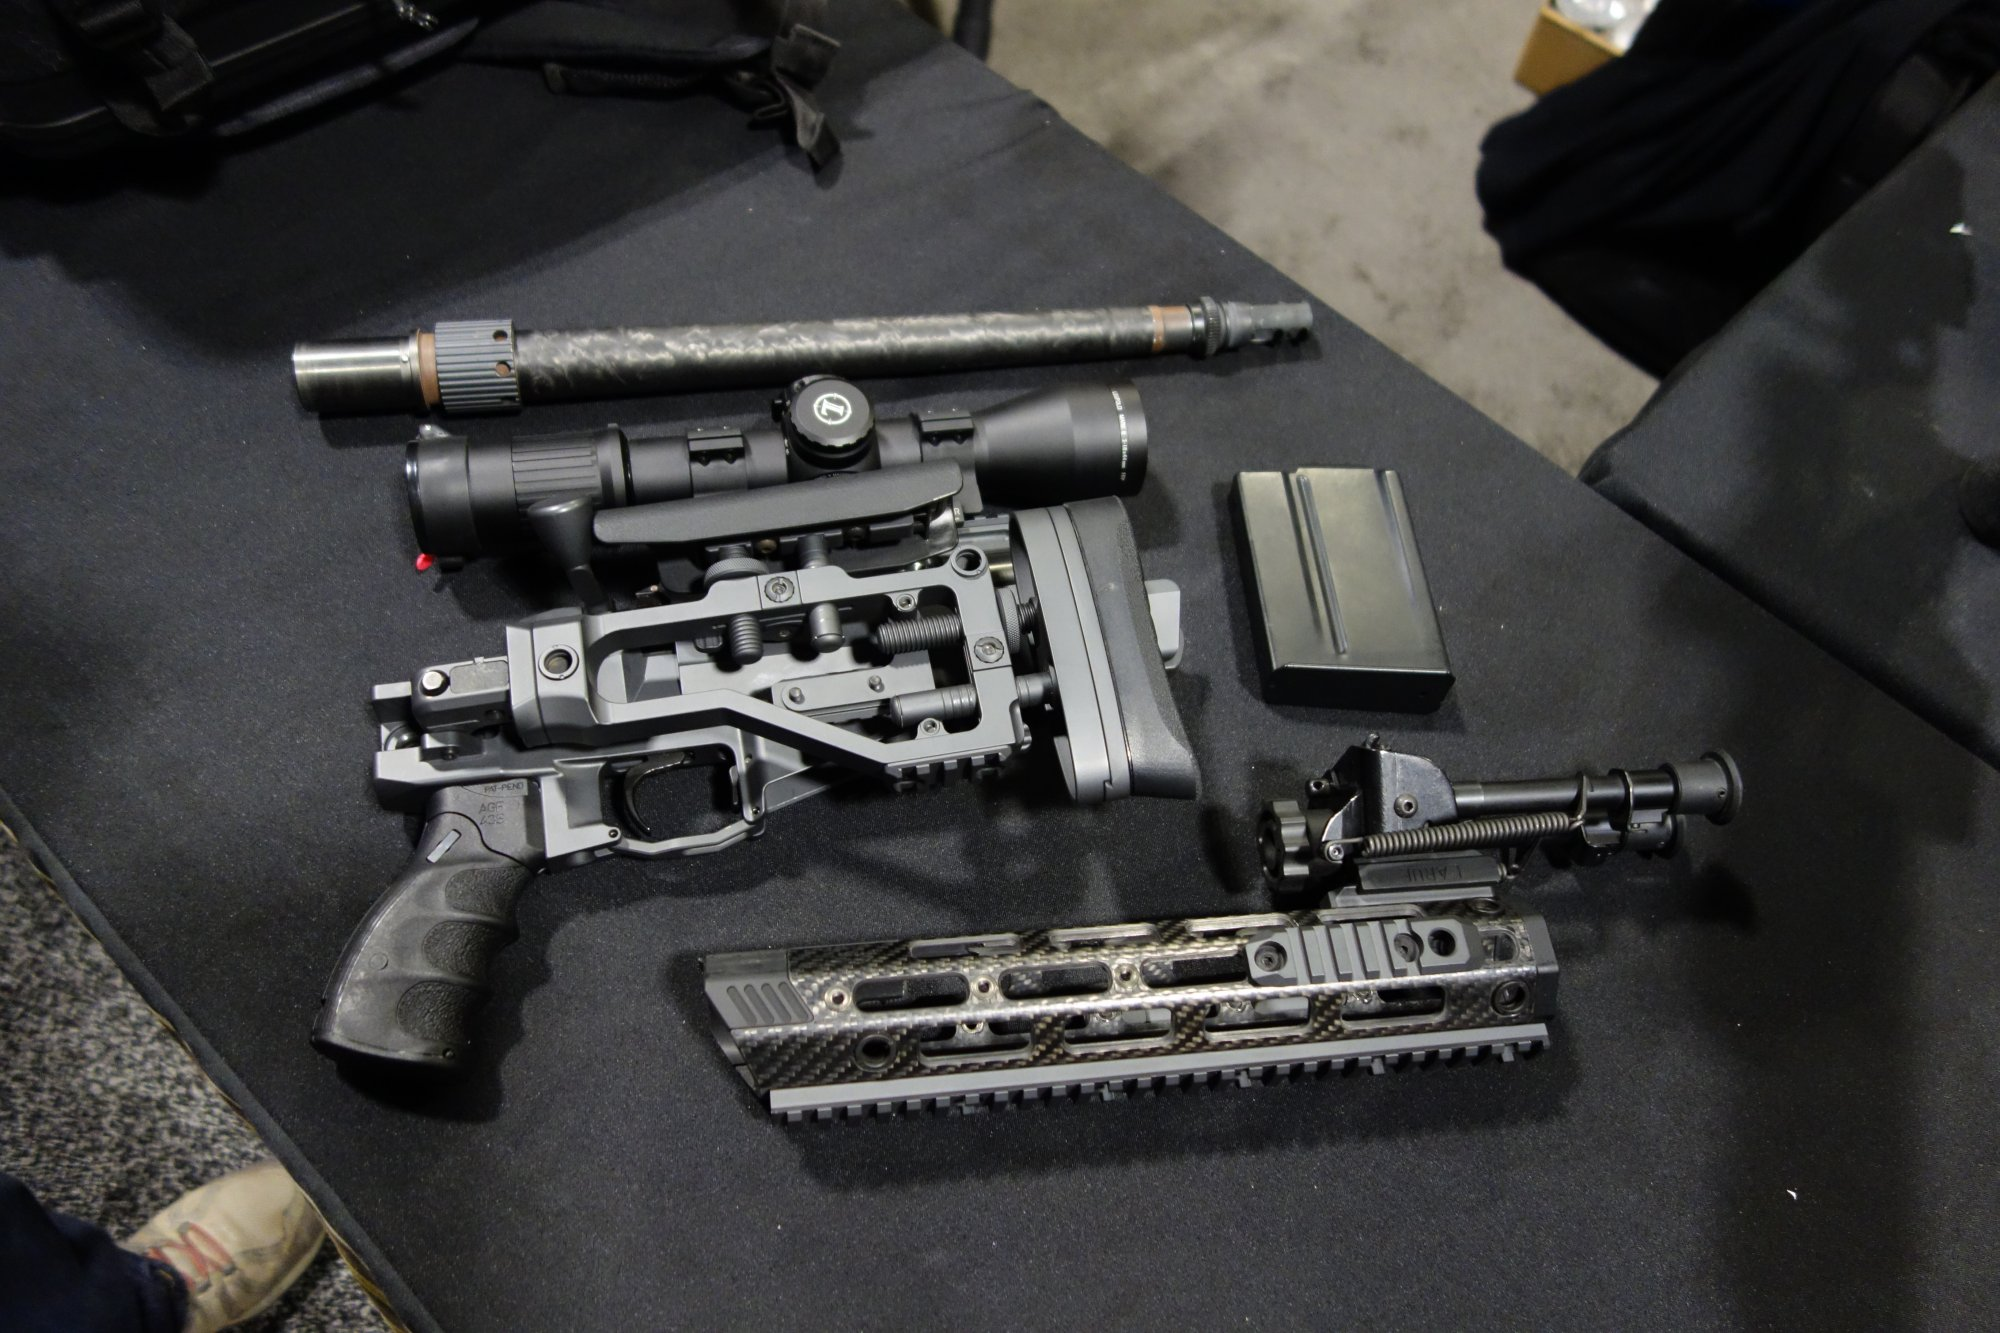 Remington Defense CSR Concealable Sniper Rifle Rucksack Rifle Breakdown Takedown Suppressed Sniper Carbine with Proof Research 16 inch Carbone Fiber Wrapped Barrel NDIA SOFIC 2014 David Crane DefenseReview.com DR 14 Remington Defense CSR (Concealable Sniper Rifle) Rucksack Rifle: Lightweight, Compact 7.62mm NATO/.308 Win. Bolt Action Breakdown/Takedown Suppressed Sniper Carbine with 14 16 Proof Research Carbon Fiber Wrapped Barrel for Your Backpack! (Video!)